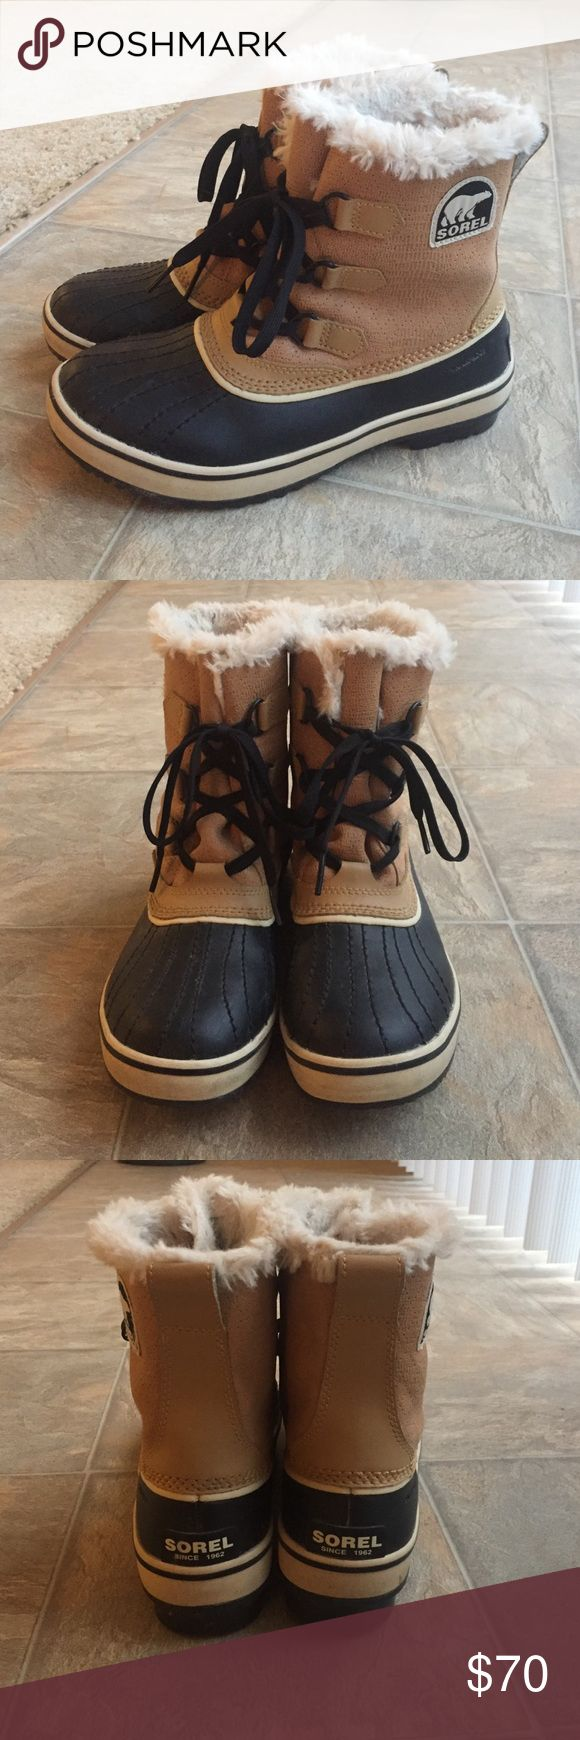 Waterproof Sorel Snow Boot Hardly ever worn, great condition! Sorel Shoes Winter & Rain Boots